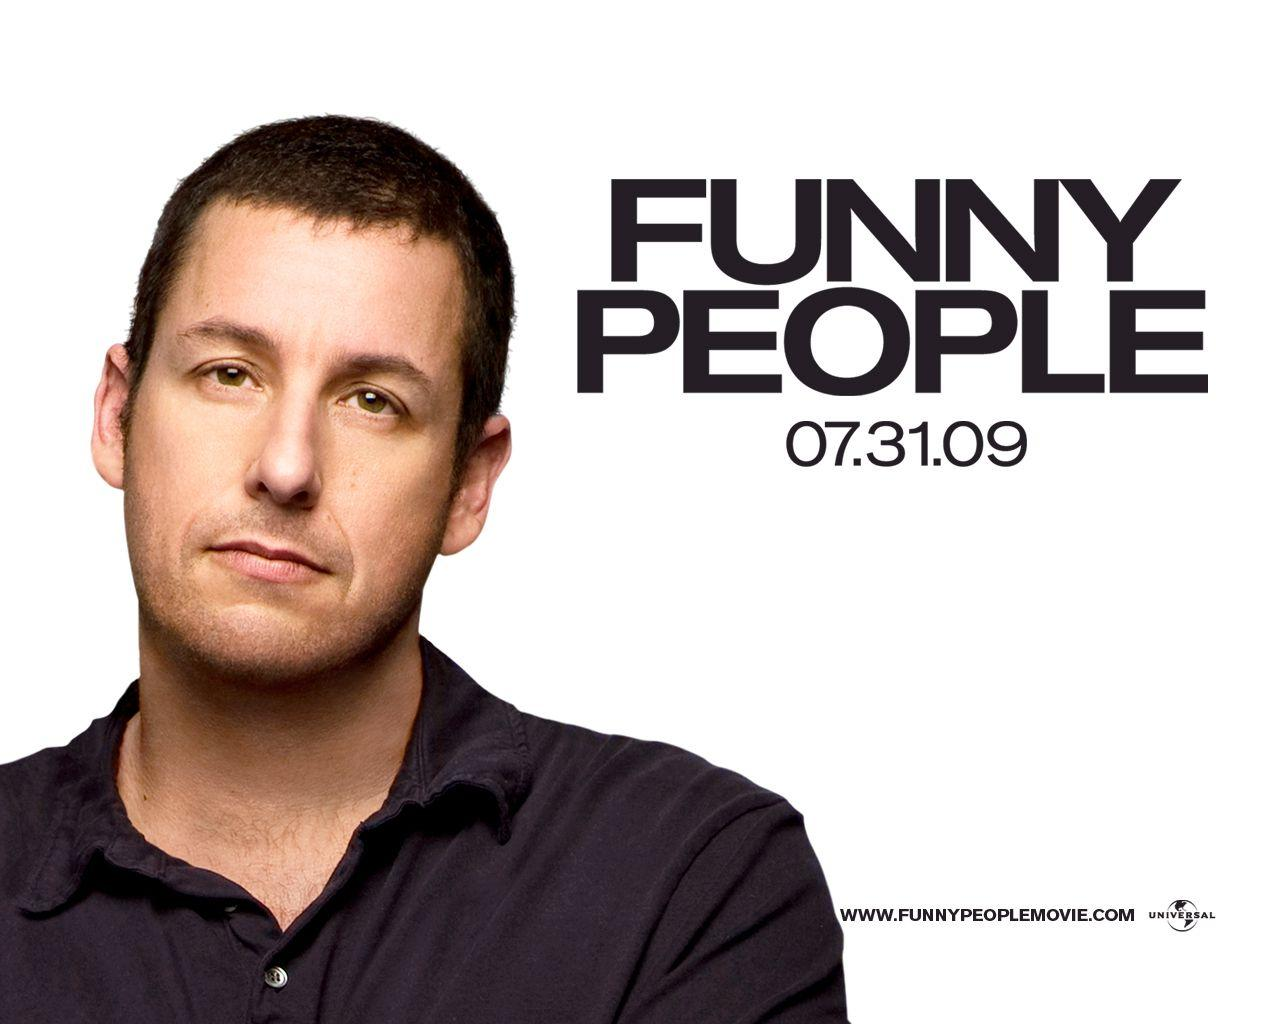 Adam Sandler Wallpapers, Amazing Adam Sandler Wallpapers actors photos